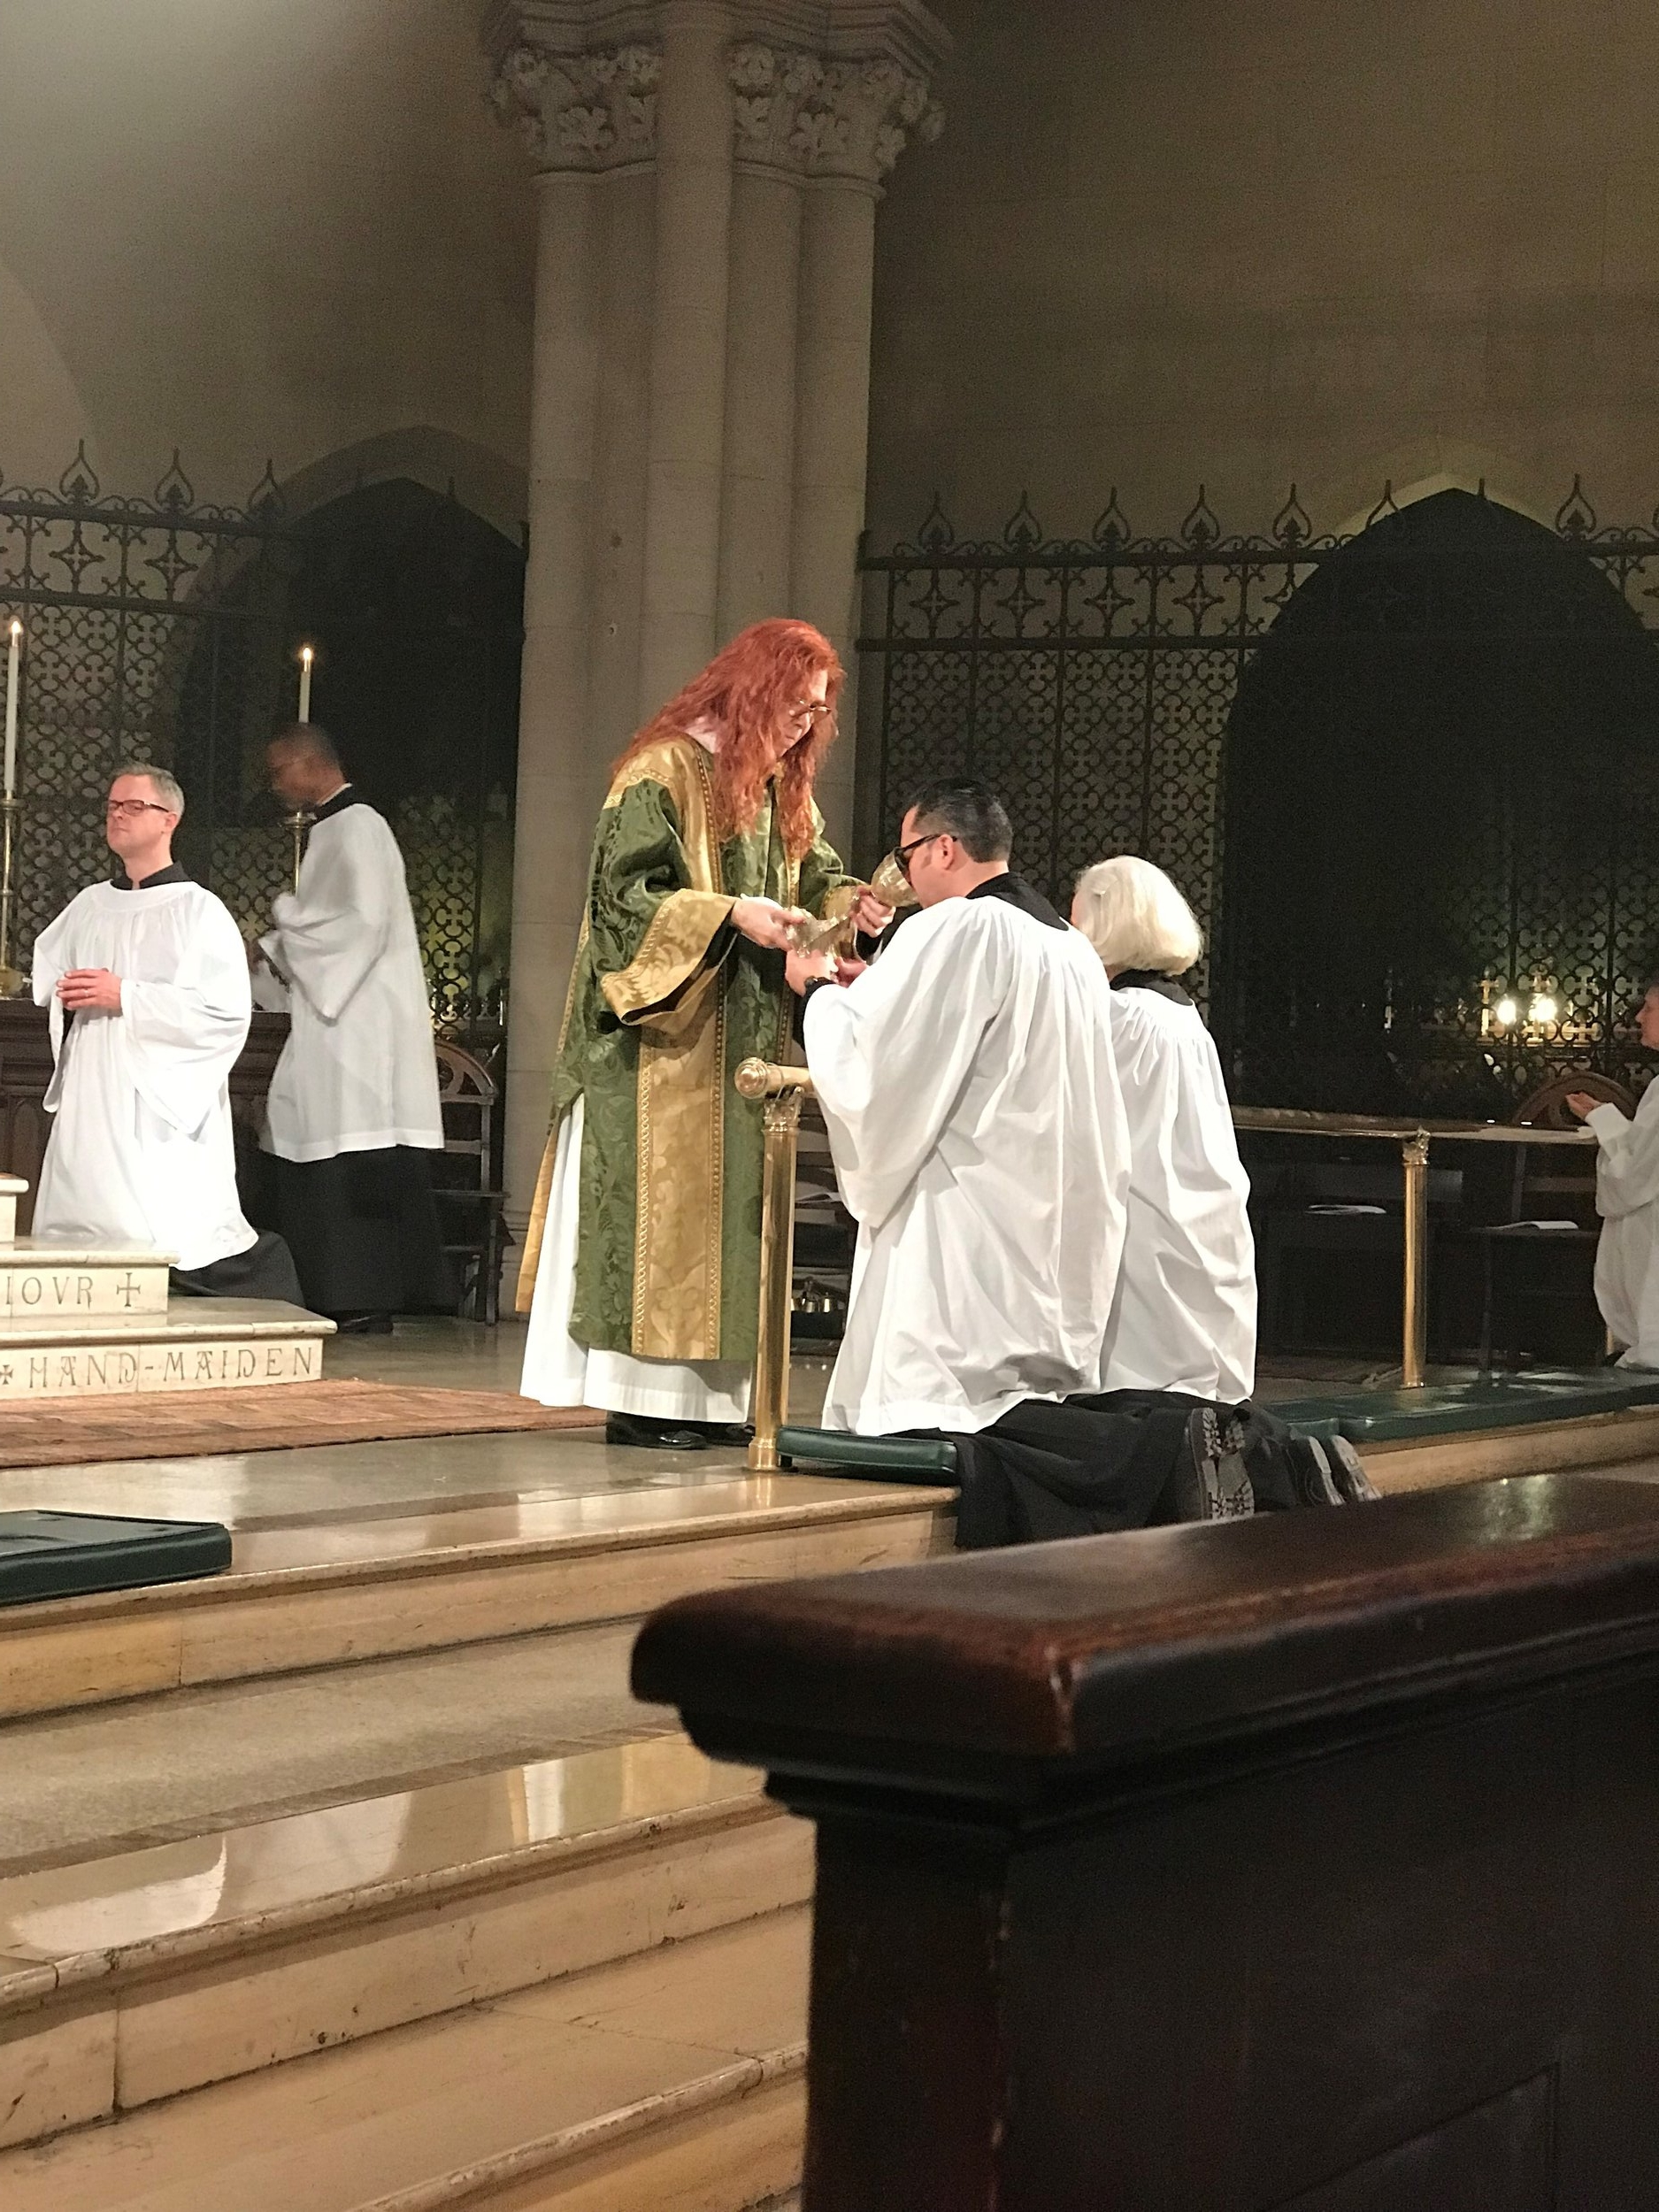 Deacon Rebecca Weiner Tompkins was with us. Servers seated in the chancel and ushers are among the last to receive Communion.   Photo by Br Damien SSF